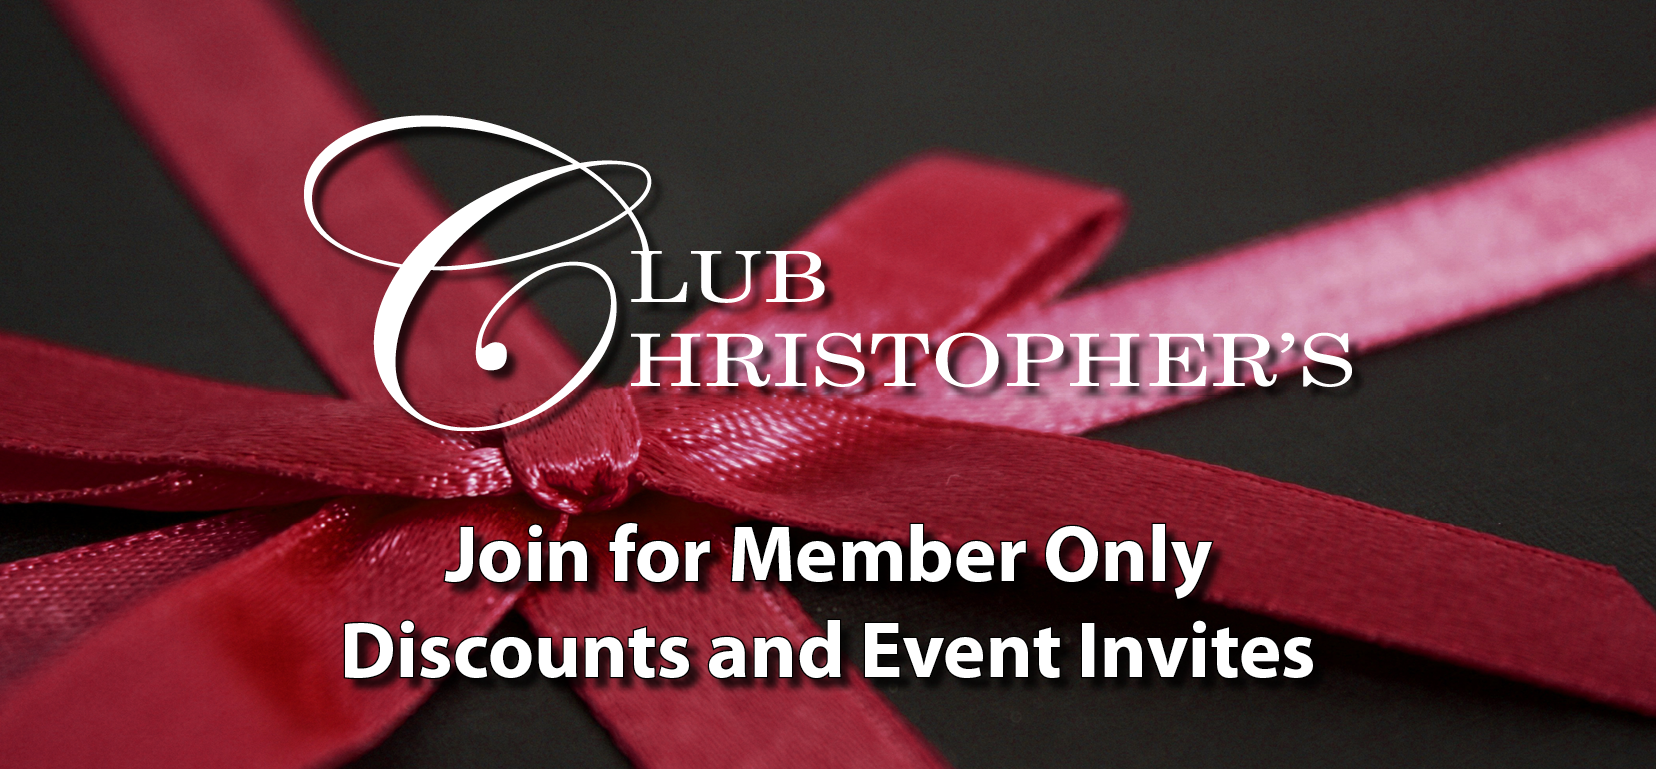 Club Christopher\'s - Christopher\'s Fine Jewelry - Des Moines, Iowa